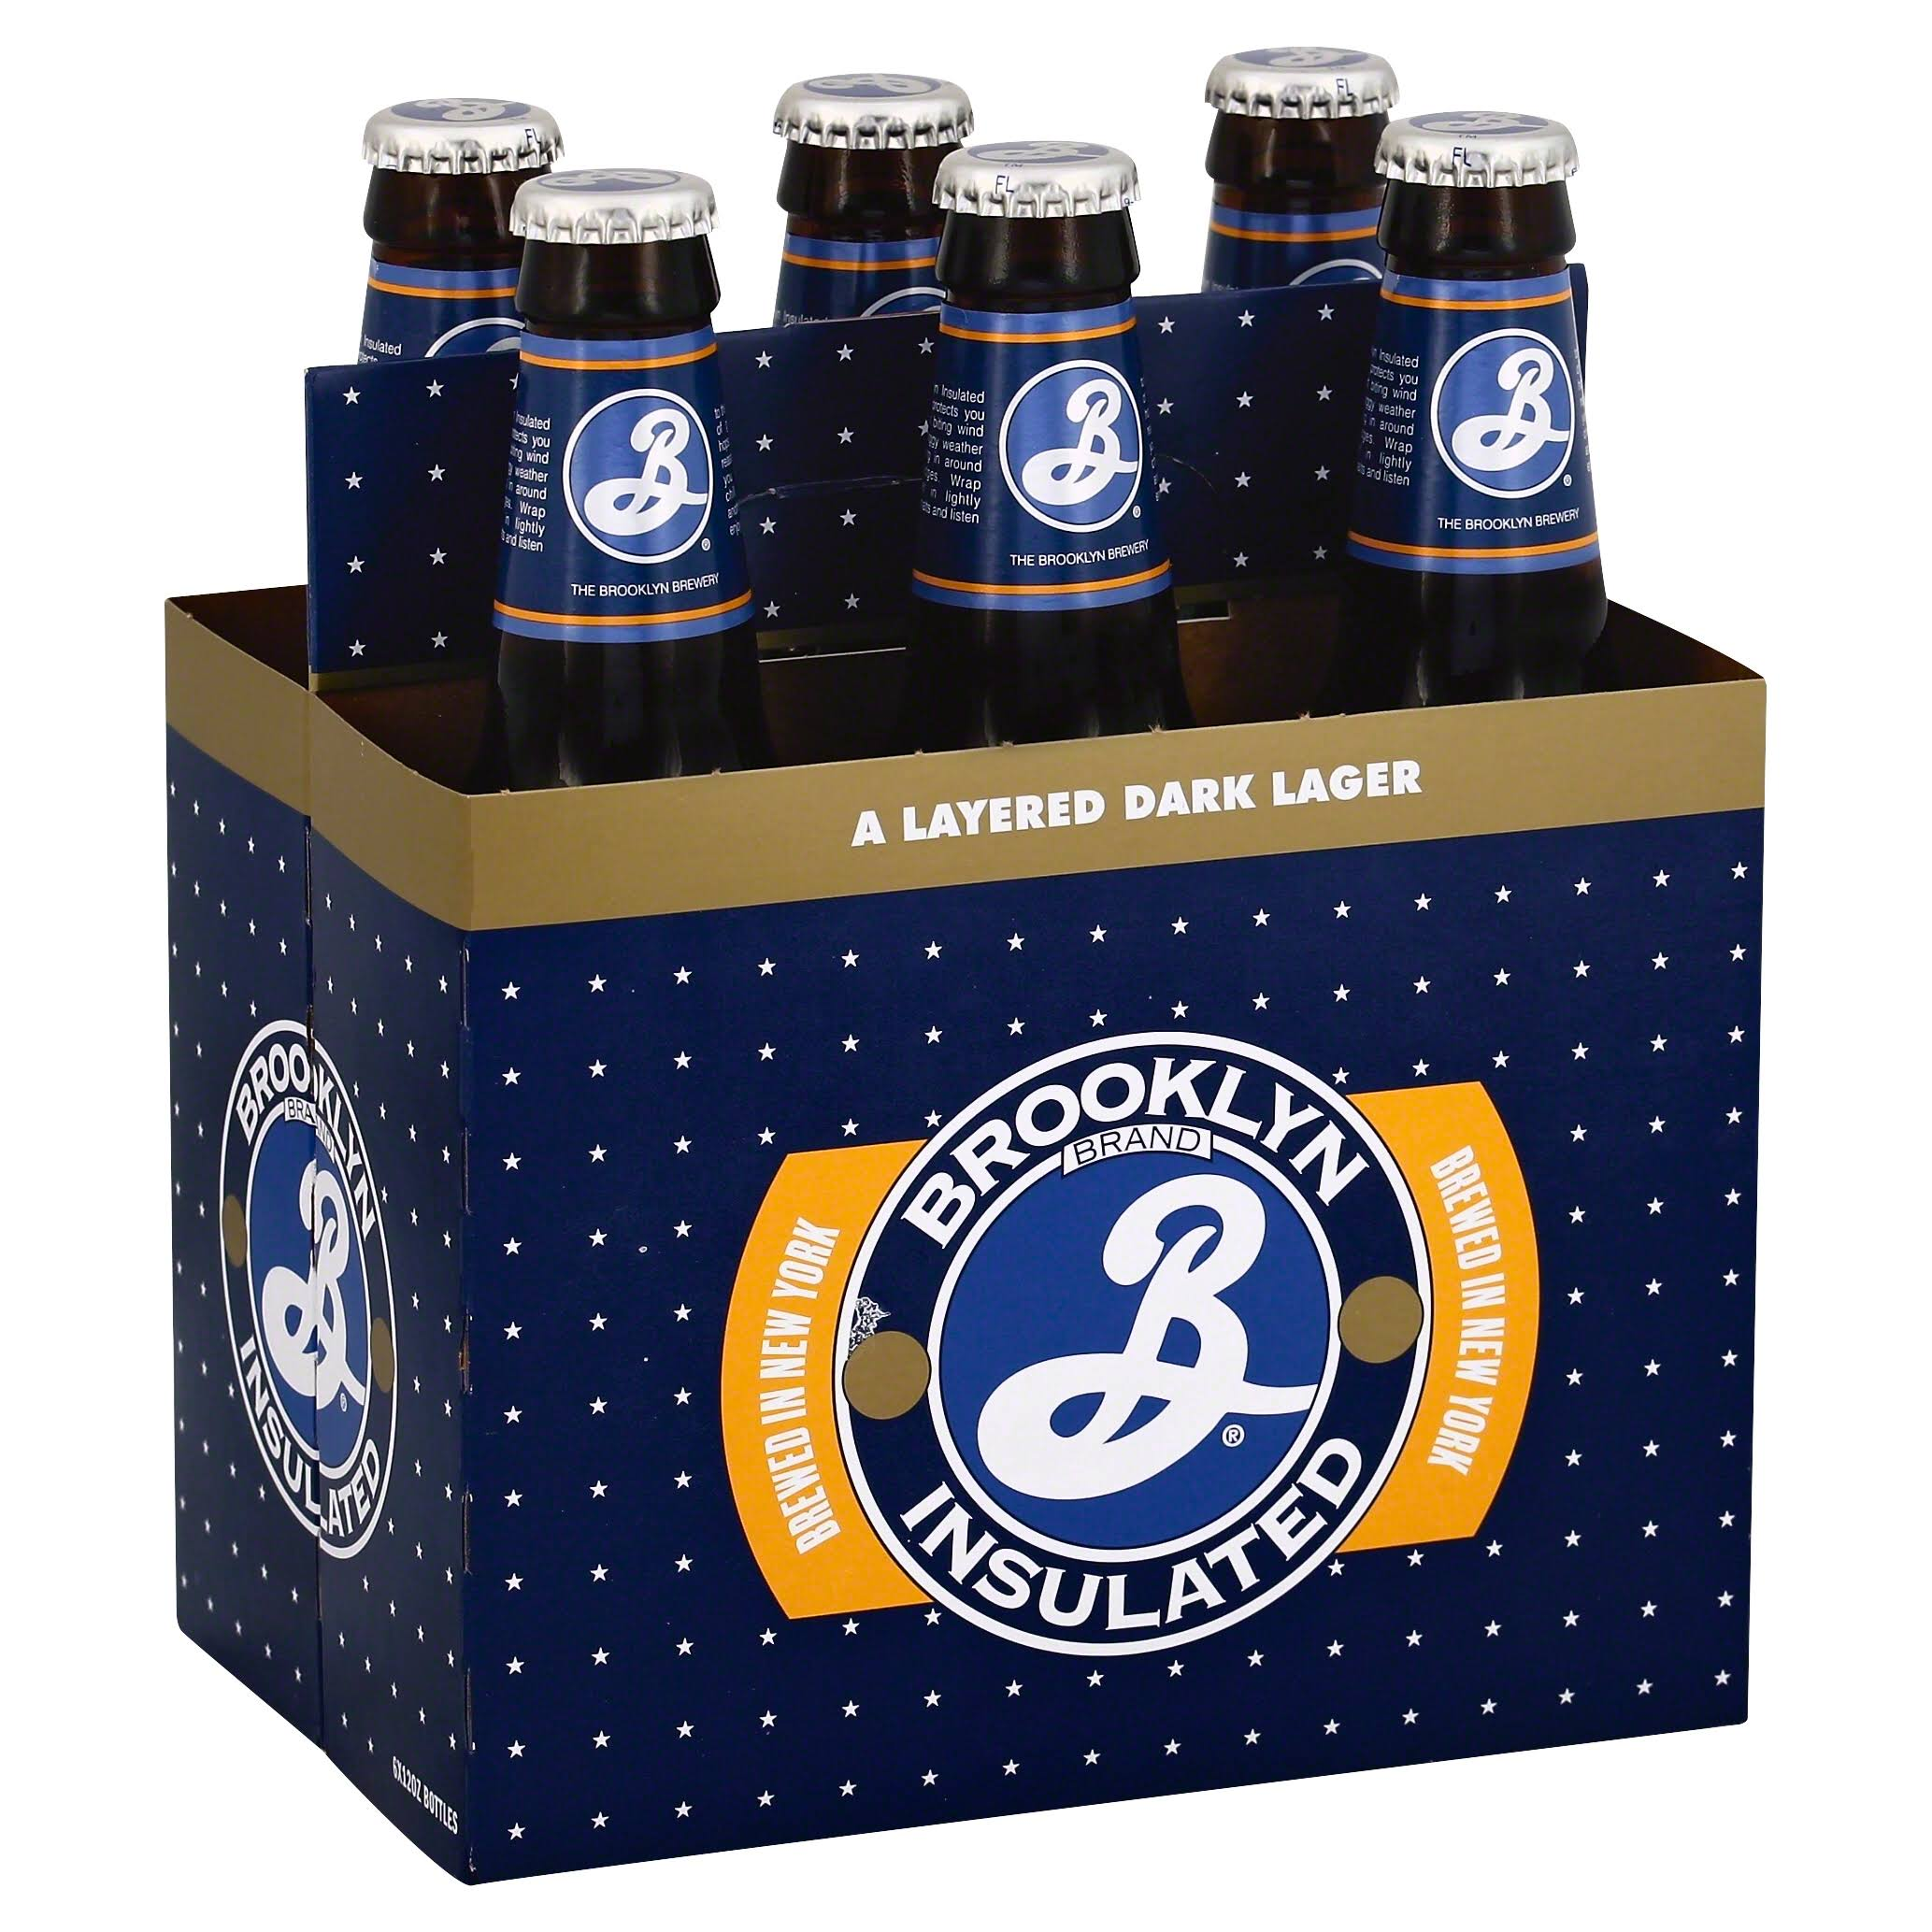 Brooklyn Brewery Lager, Dark, Insulated - 6 pack, 12 oz bottles